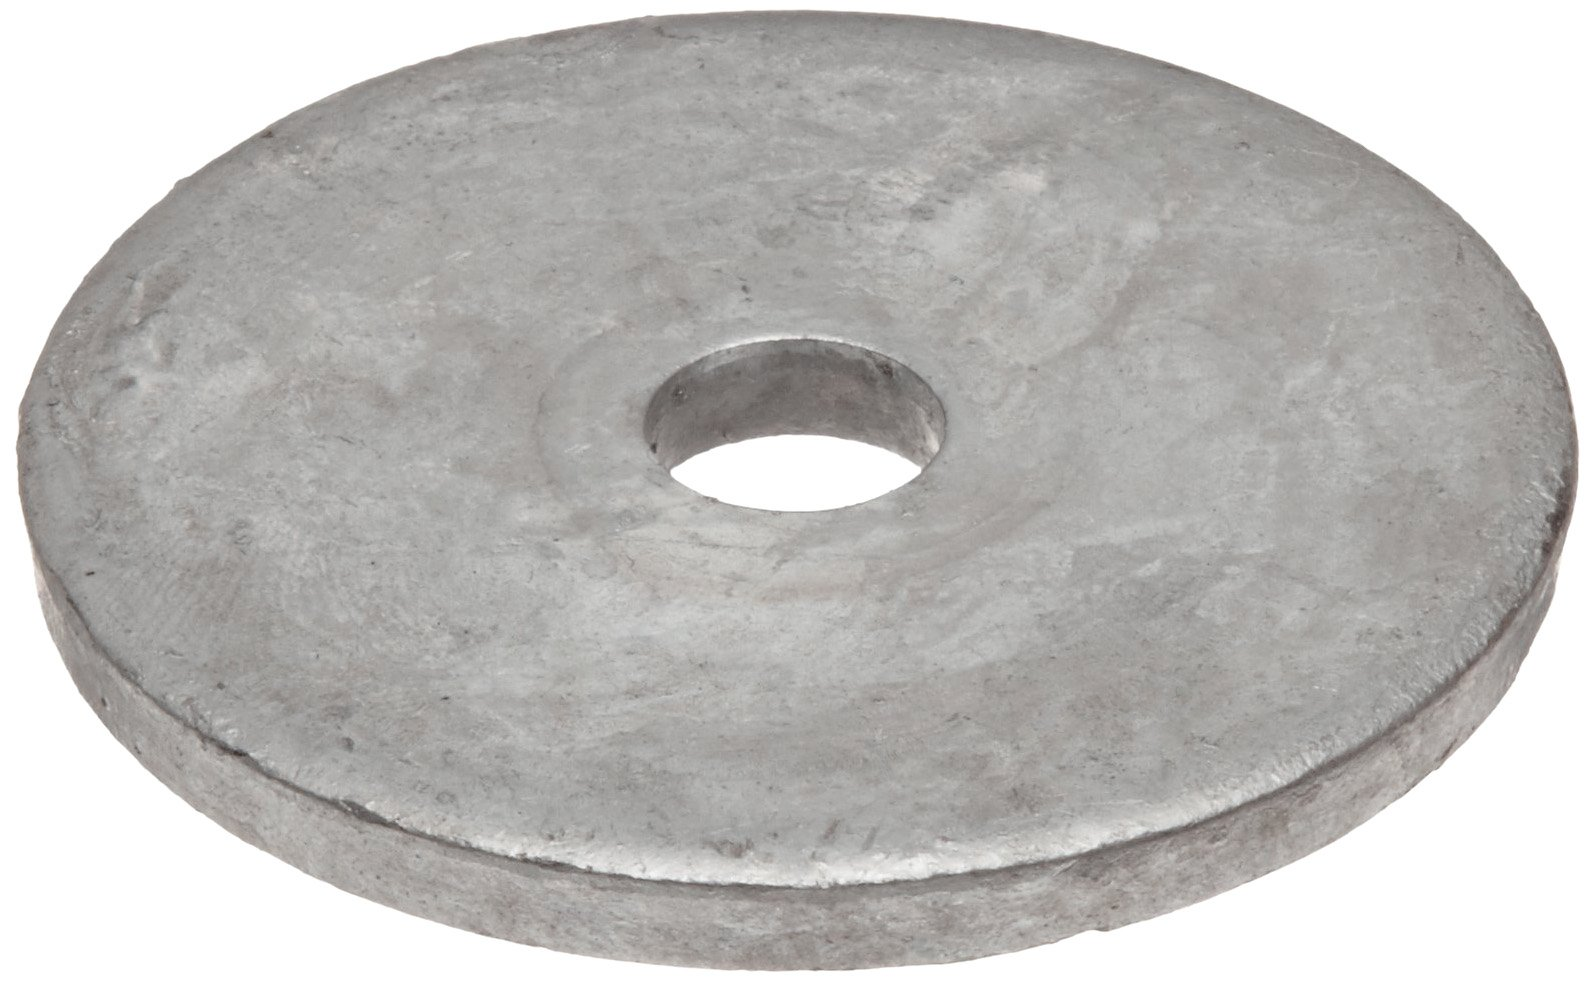 Steel Flat Washer, Galvanized Finish, 1/2'' Hole Size, 0.688'' ID, 3'' OD, 0.250'' Nominal Thickness, Made in US (Pack of 5)